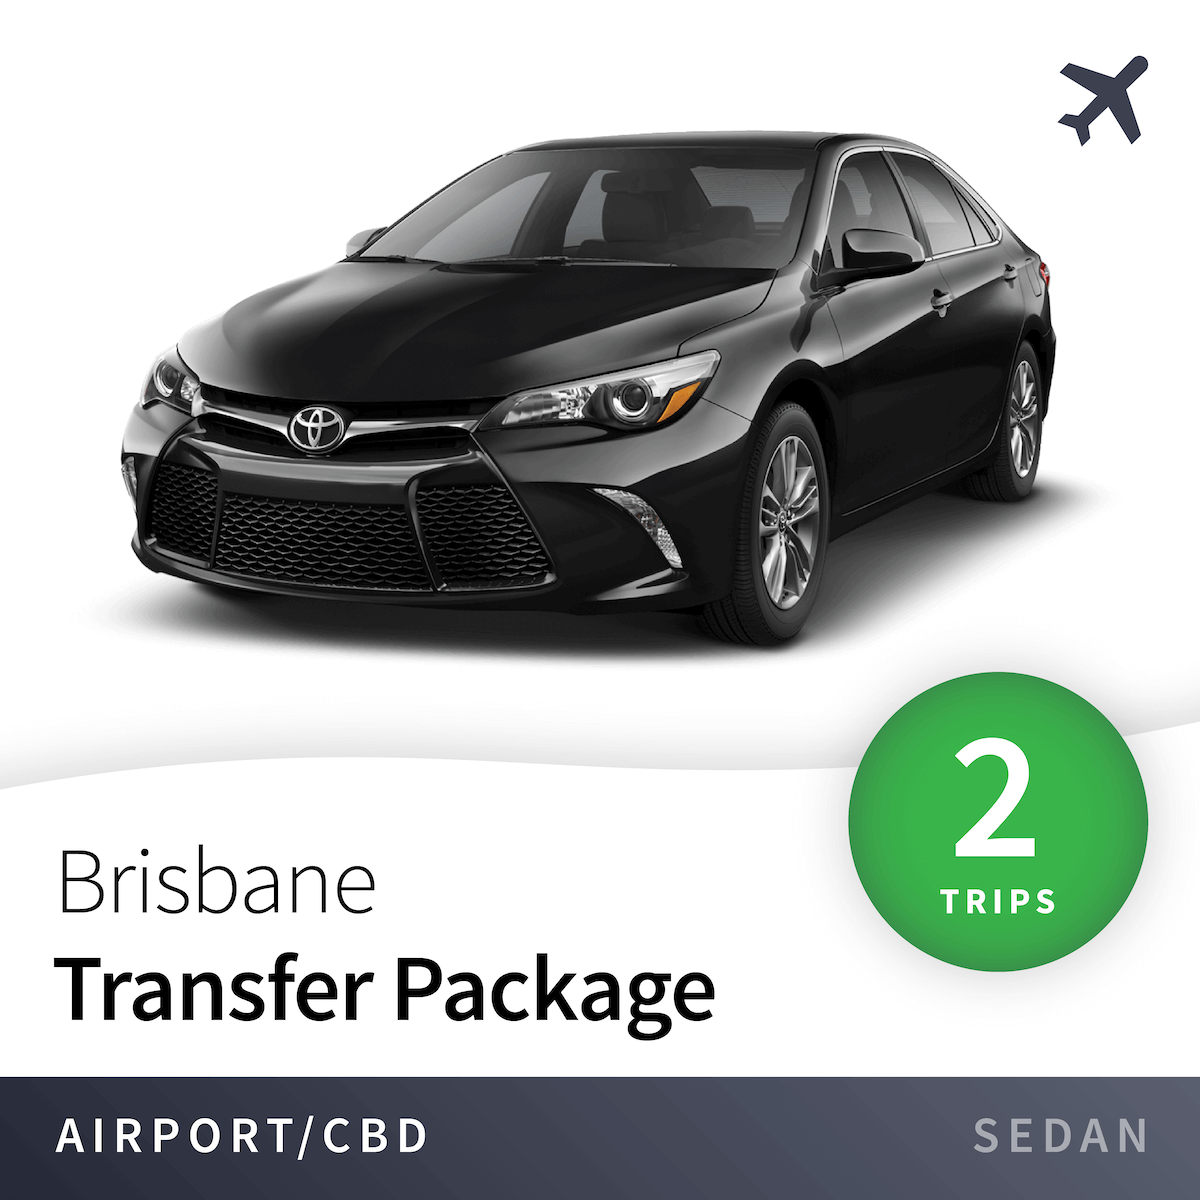 Brisbane Airport Transfer Package - Sedan (2 Trips) 1